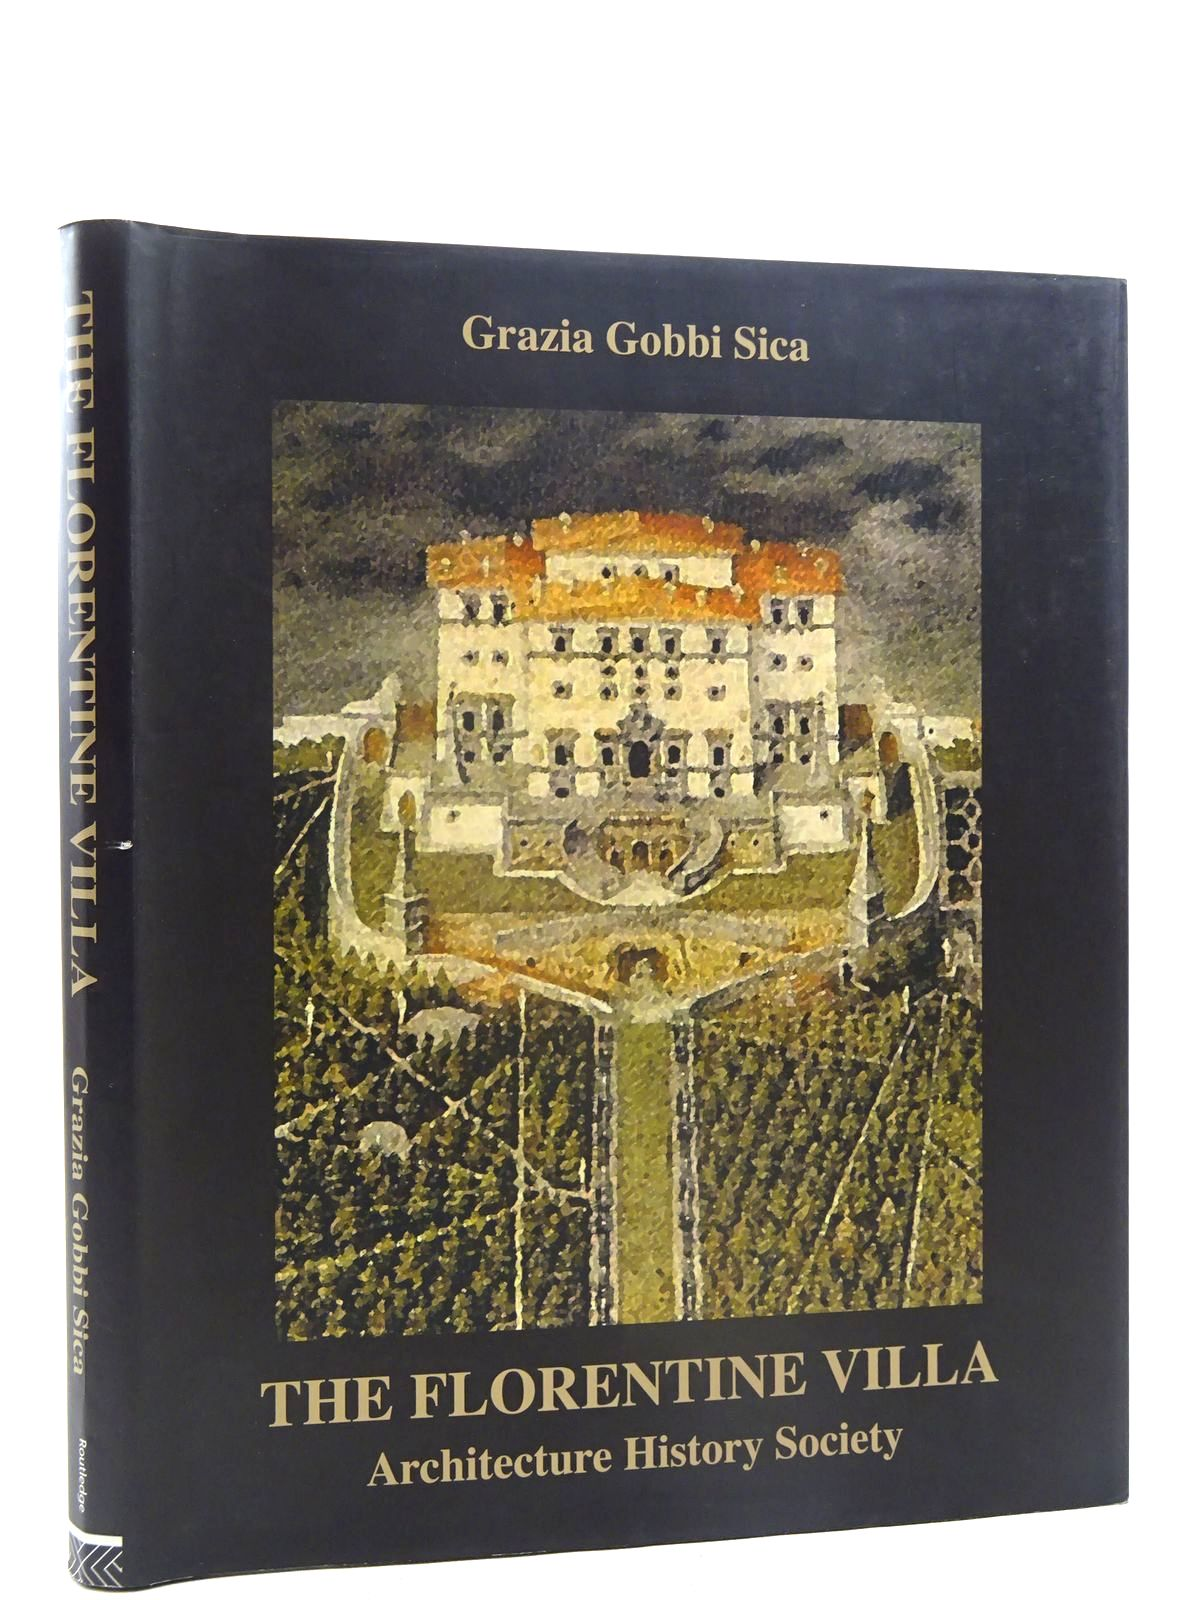 The Florentine Villa Architecture History Society